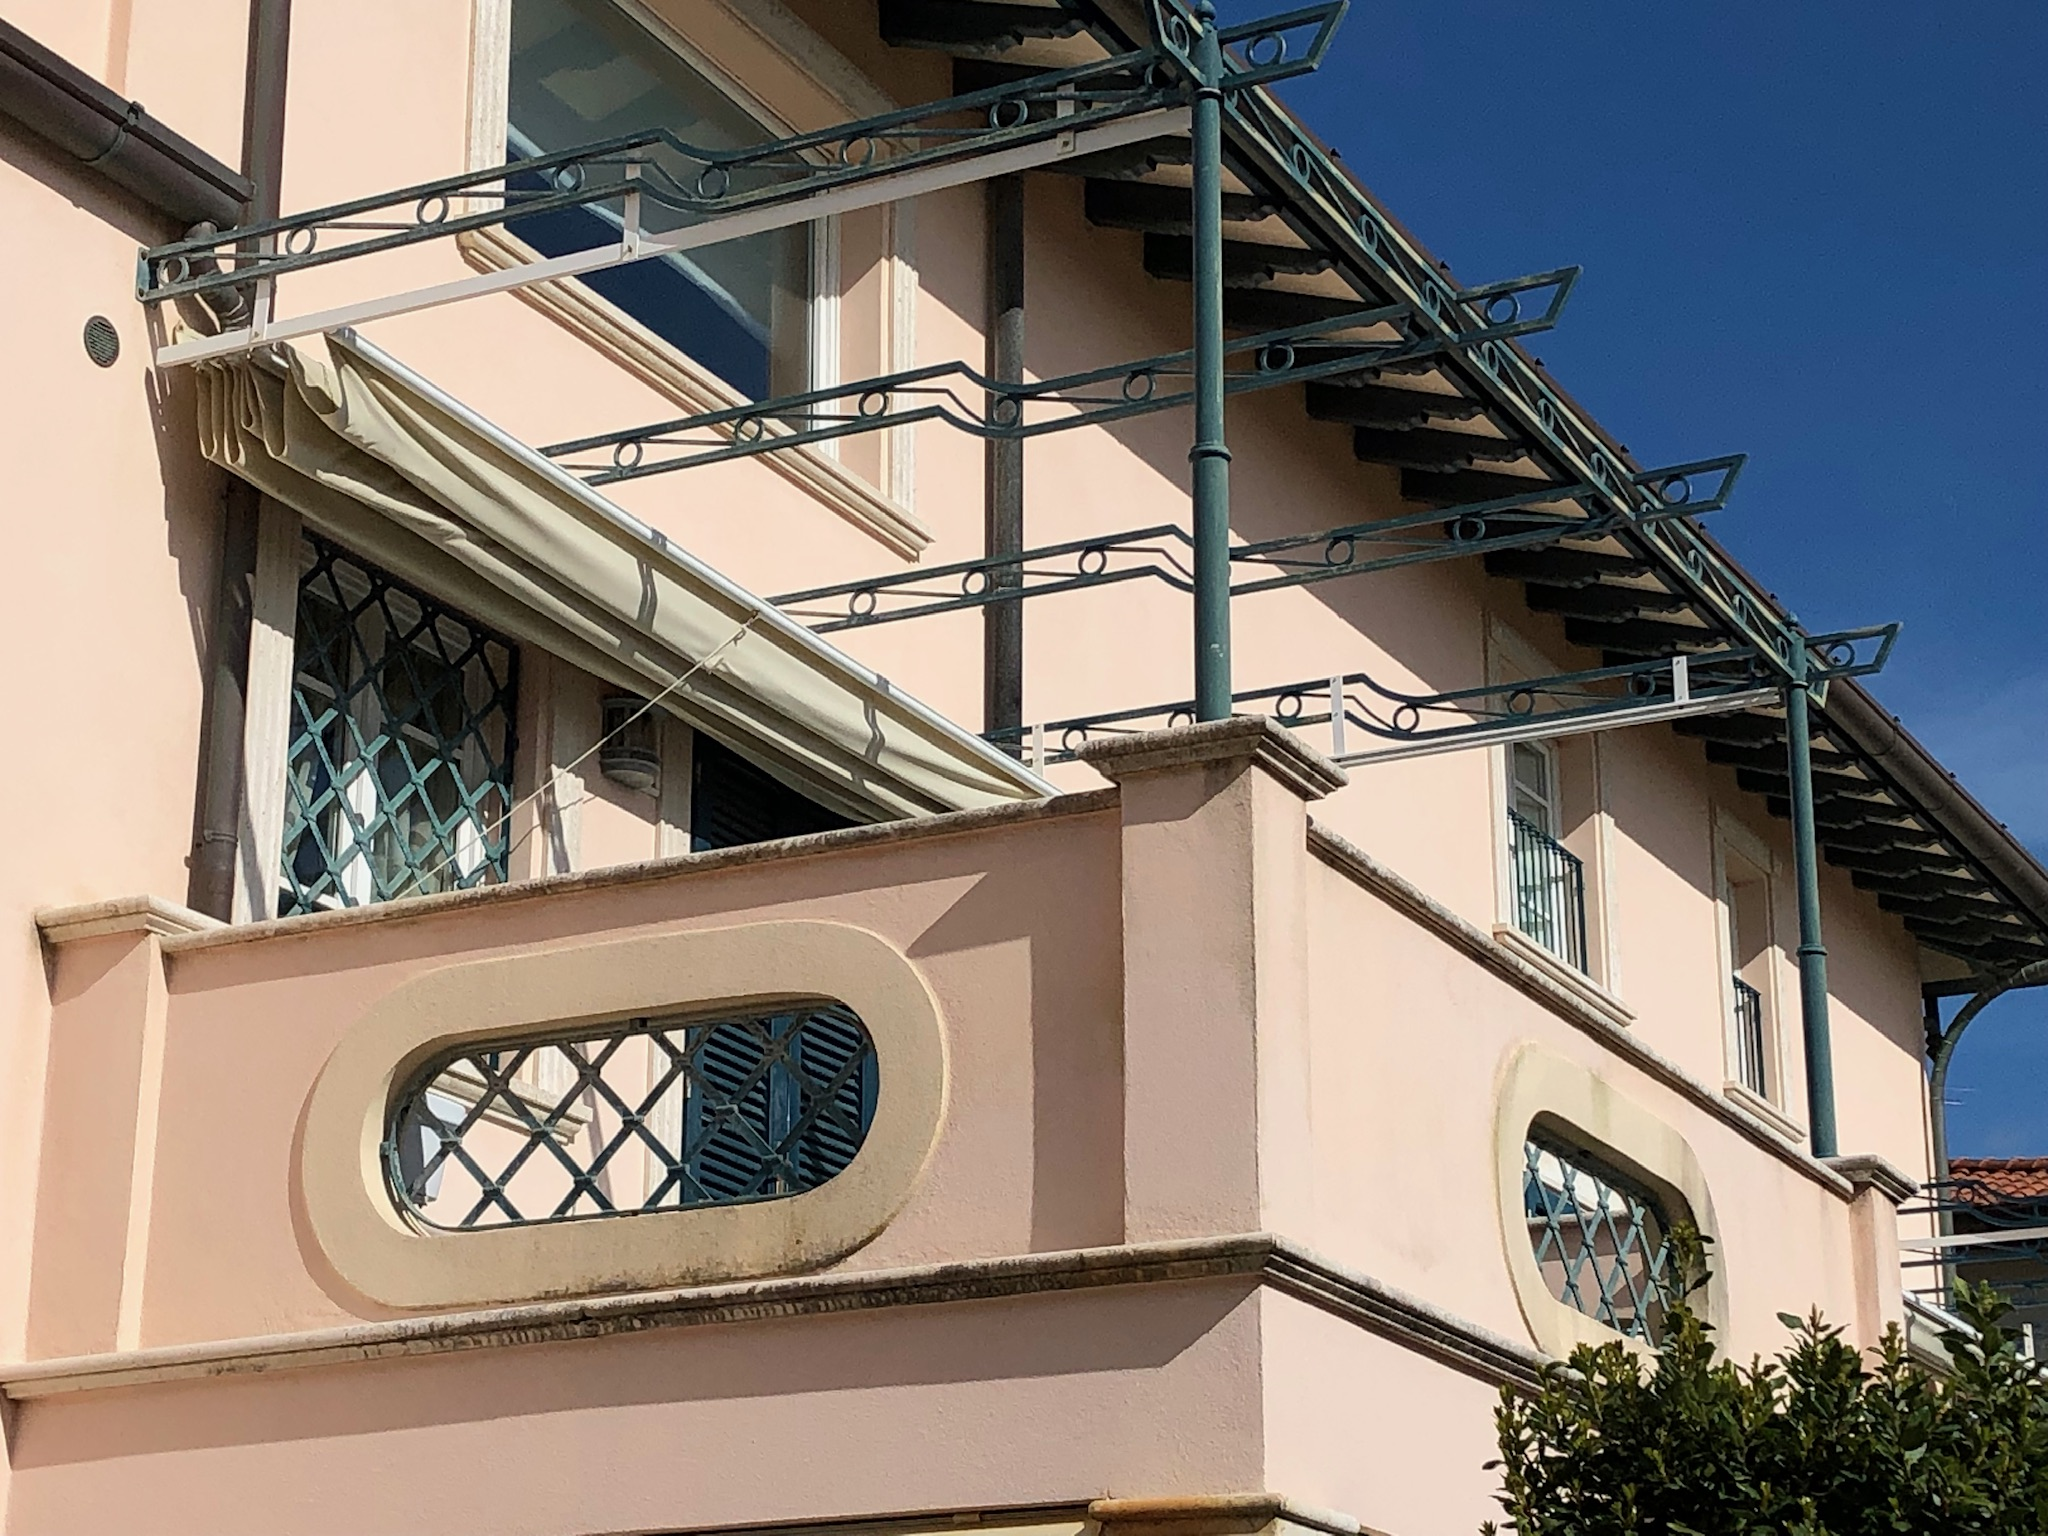 Apartment in Marina di Pietrasanta near the sea.